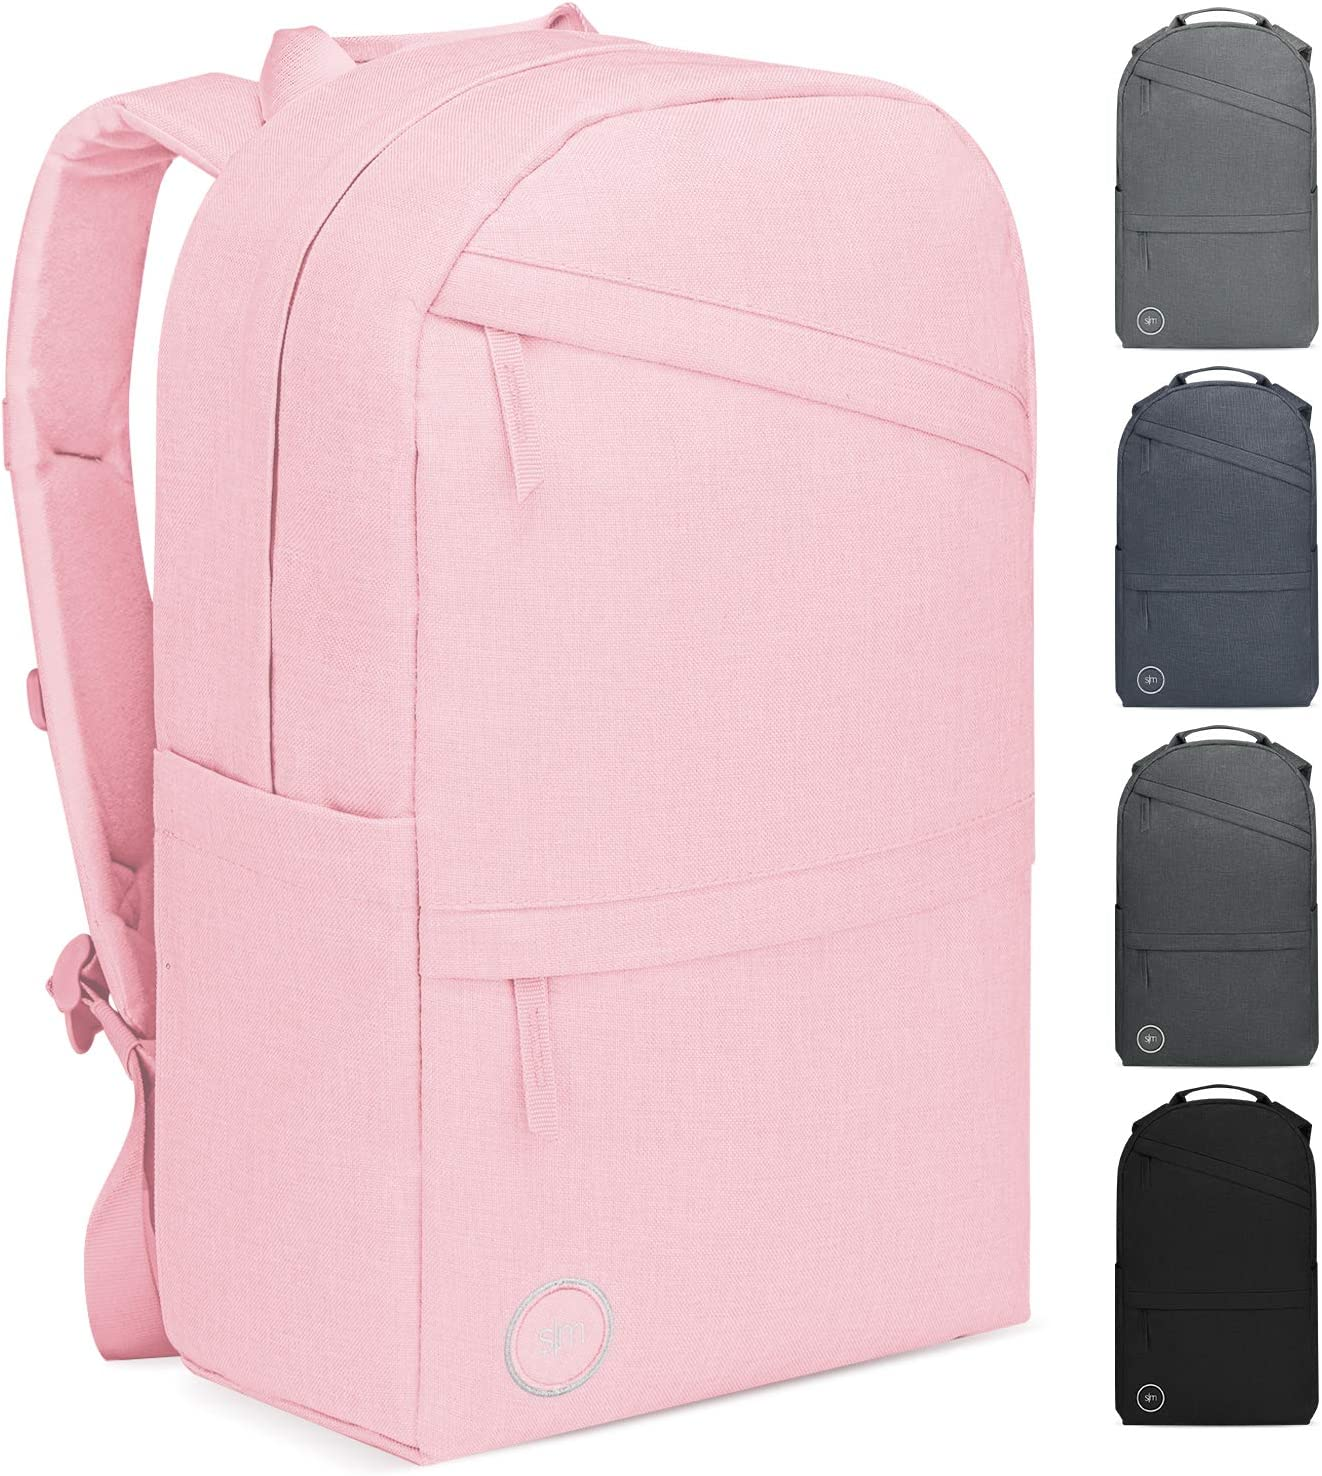 Simple Modern Legacy Backpack with Laptop Compartment Sleeve - 15L Travel Bag for Men & Women College Work School -Blush